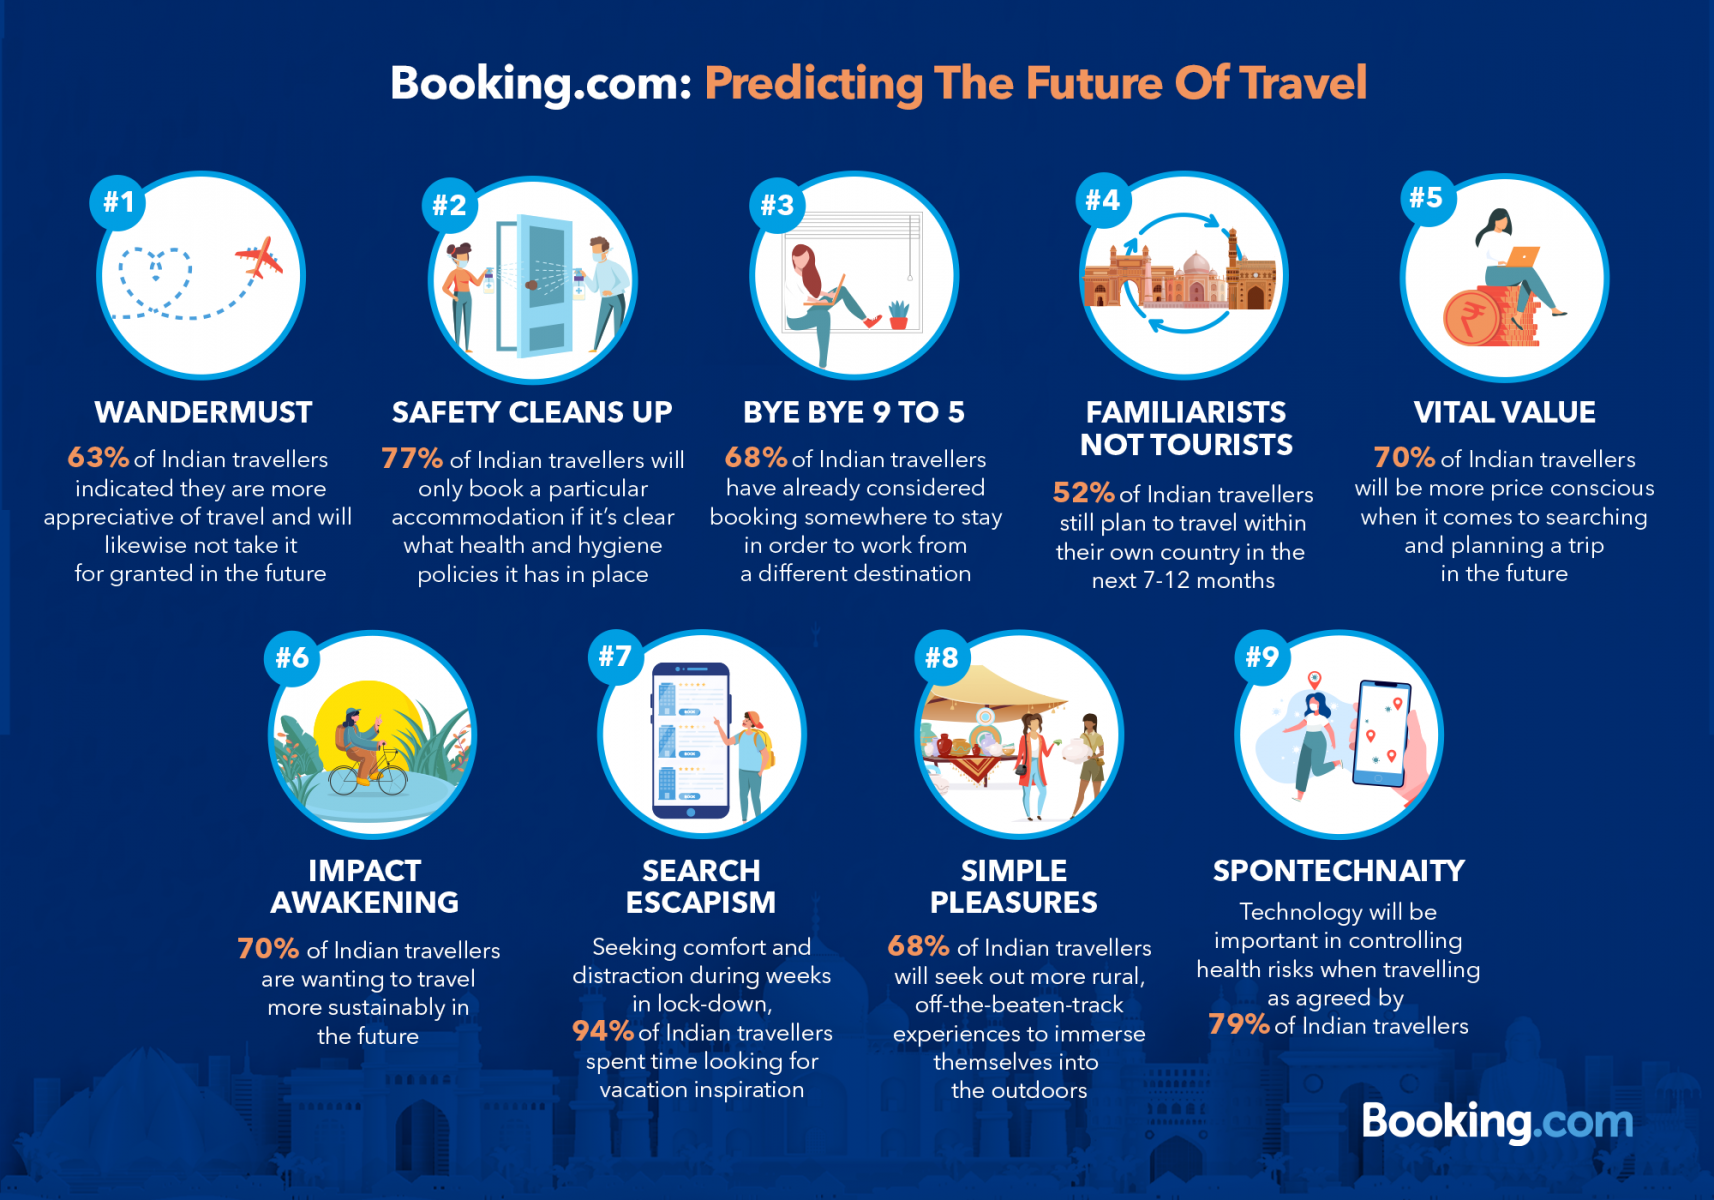 The Future Of Travel_Booking.com_Infographic